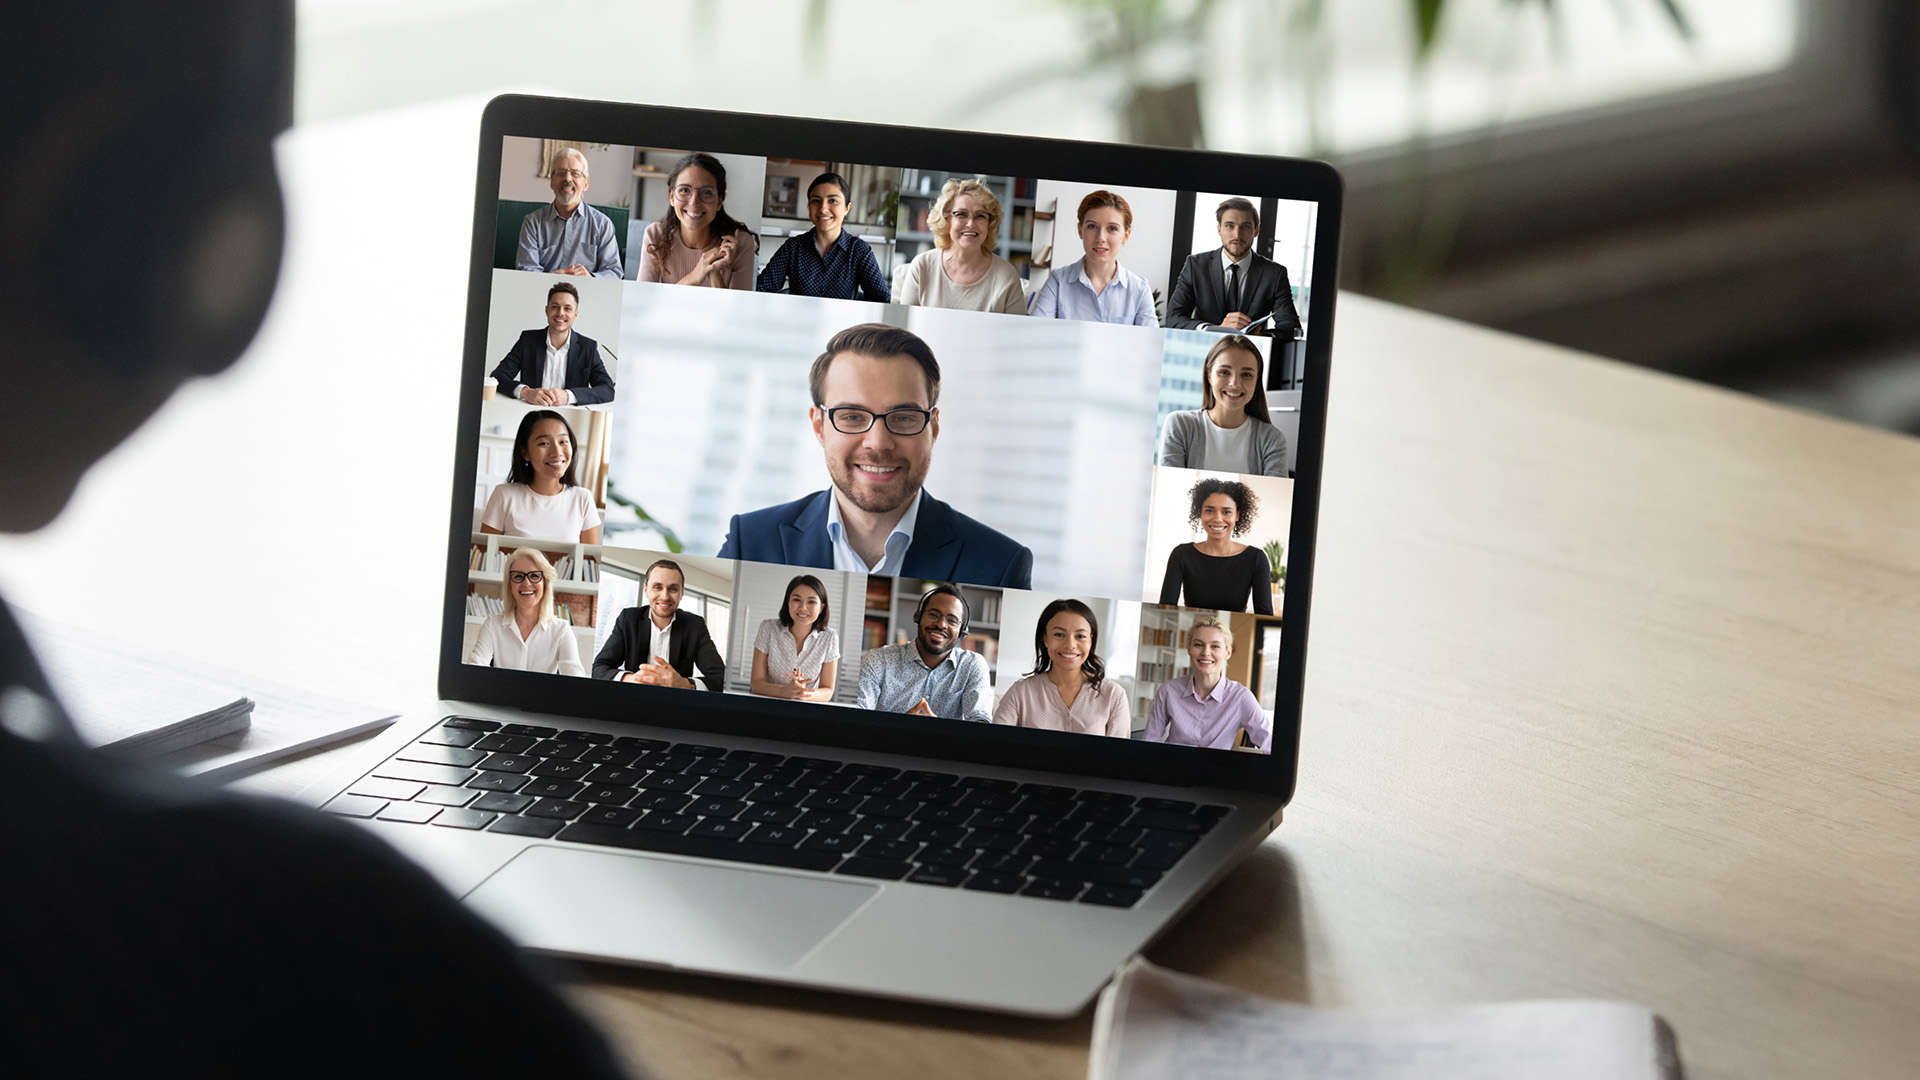 Video conference technology in 2020